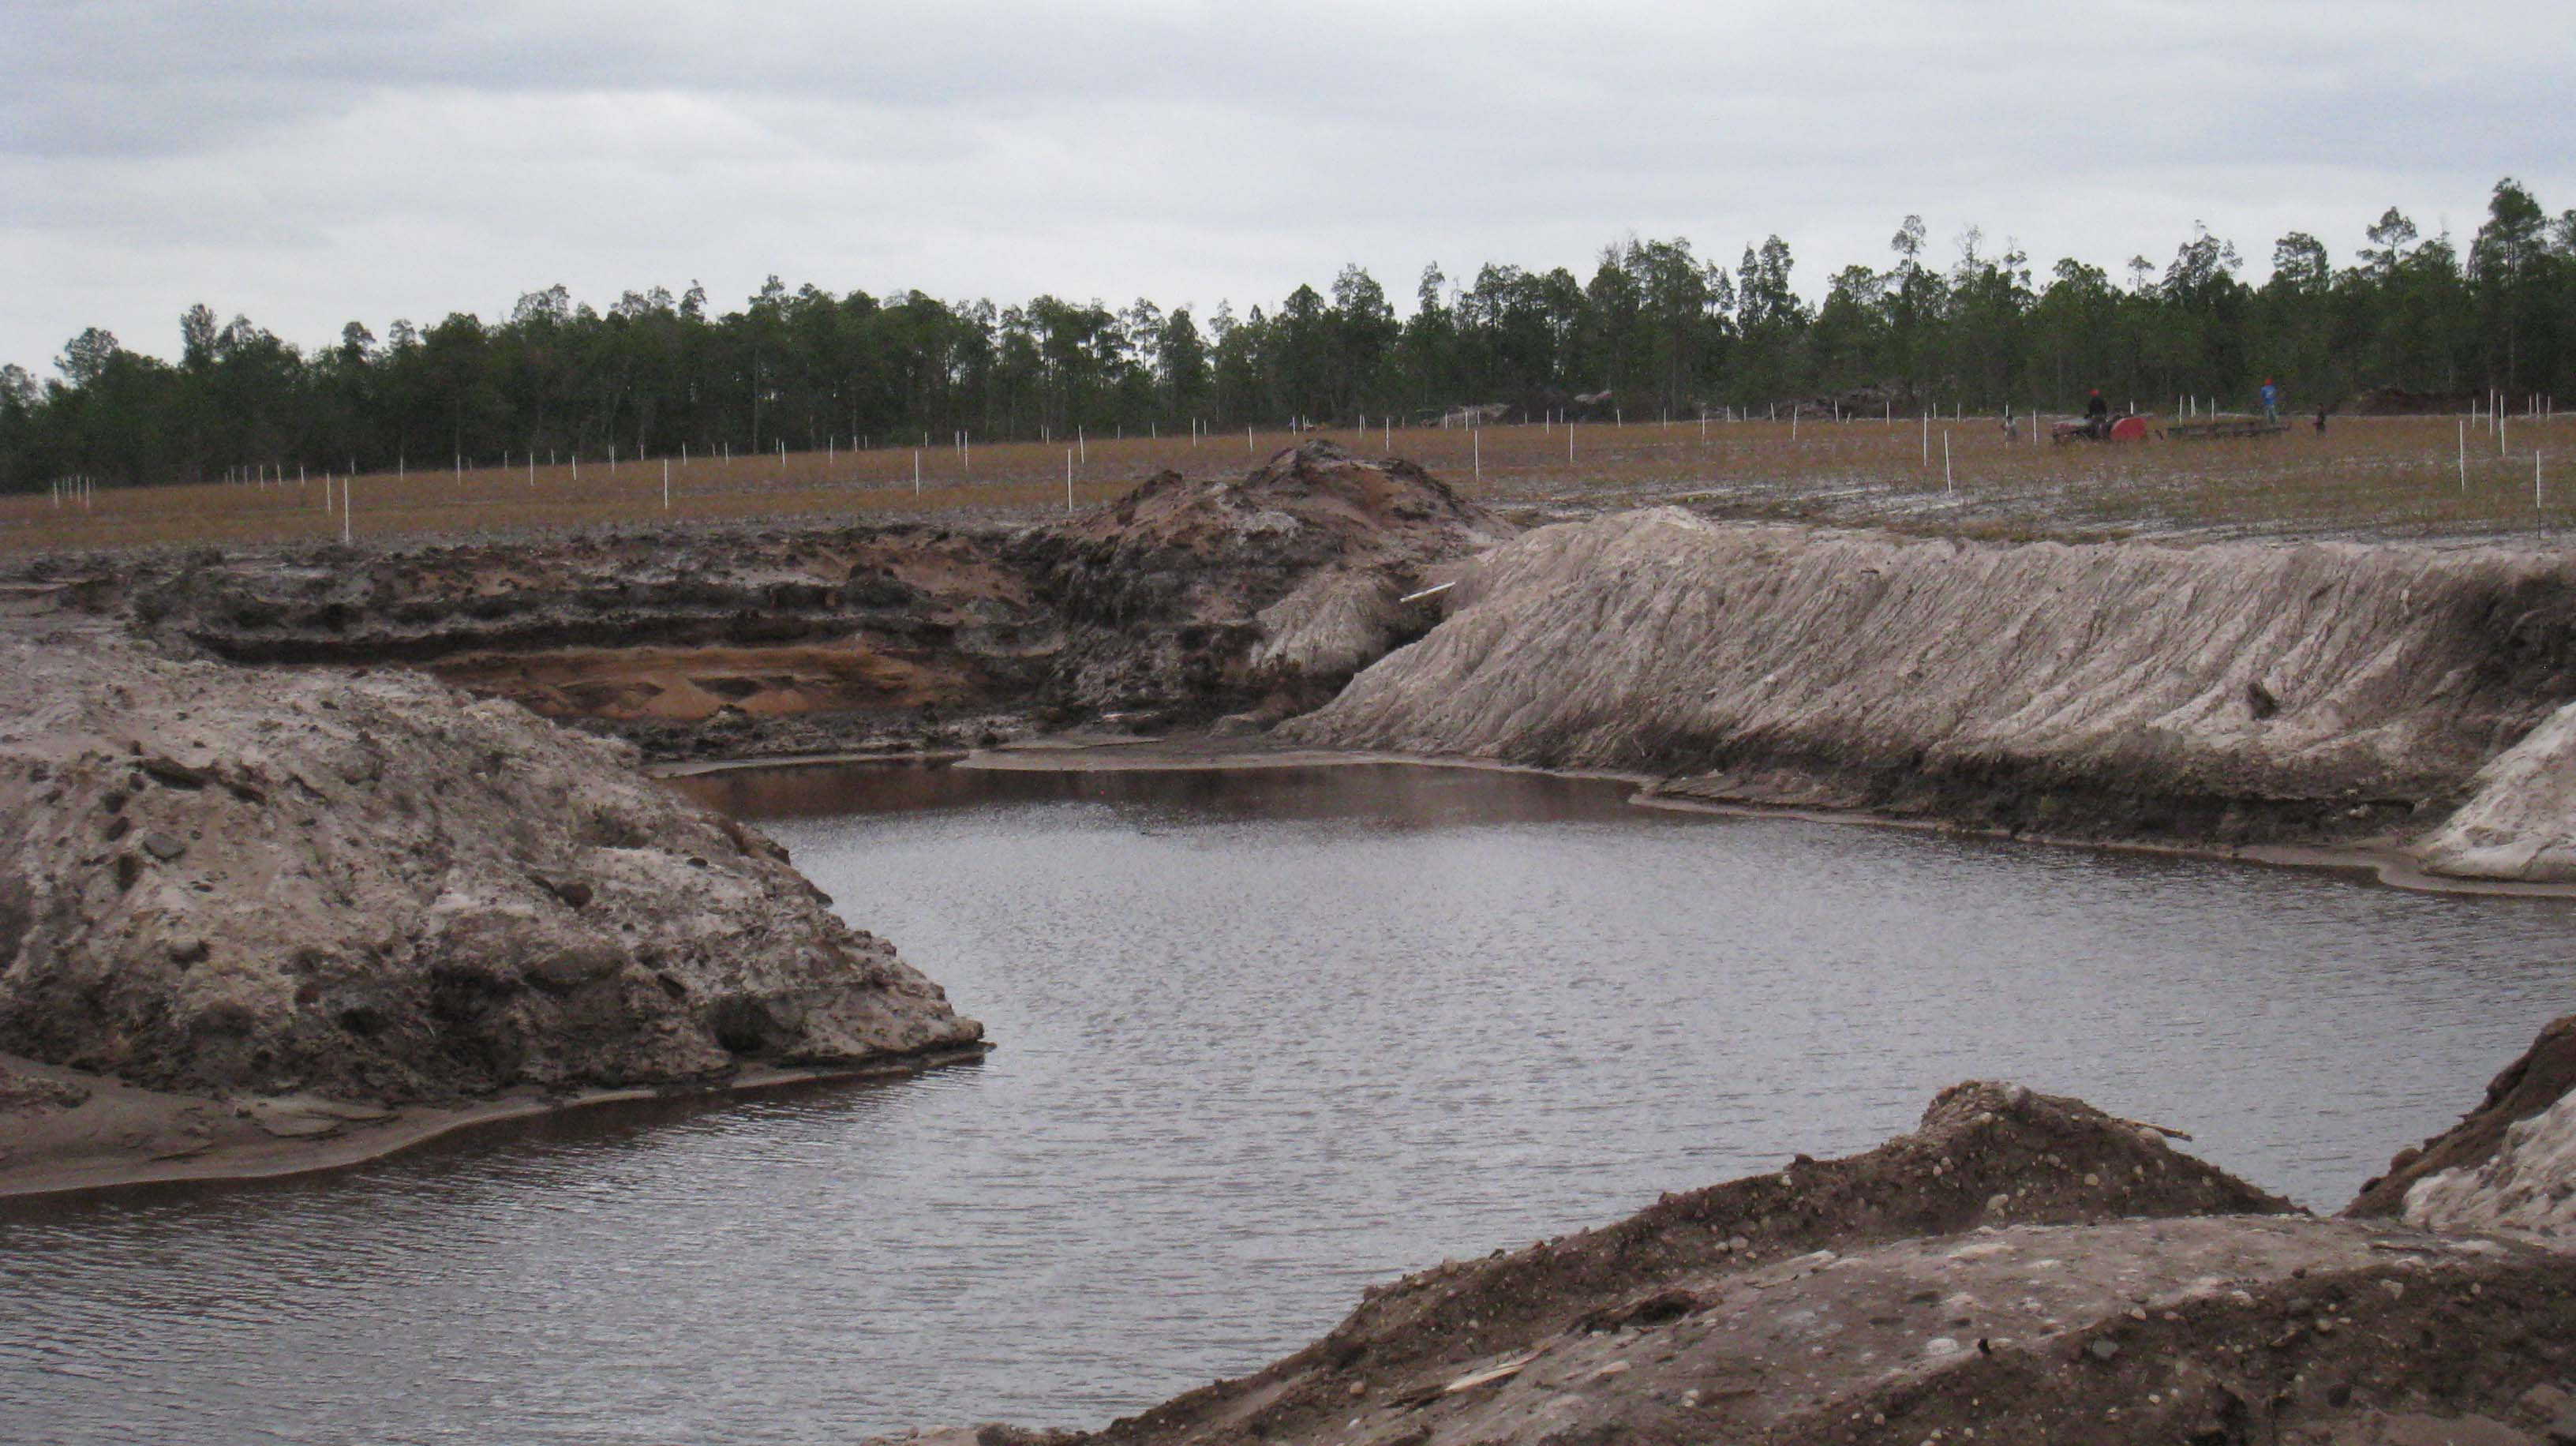 Ponds must be included in new site plans